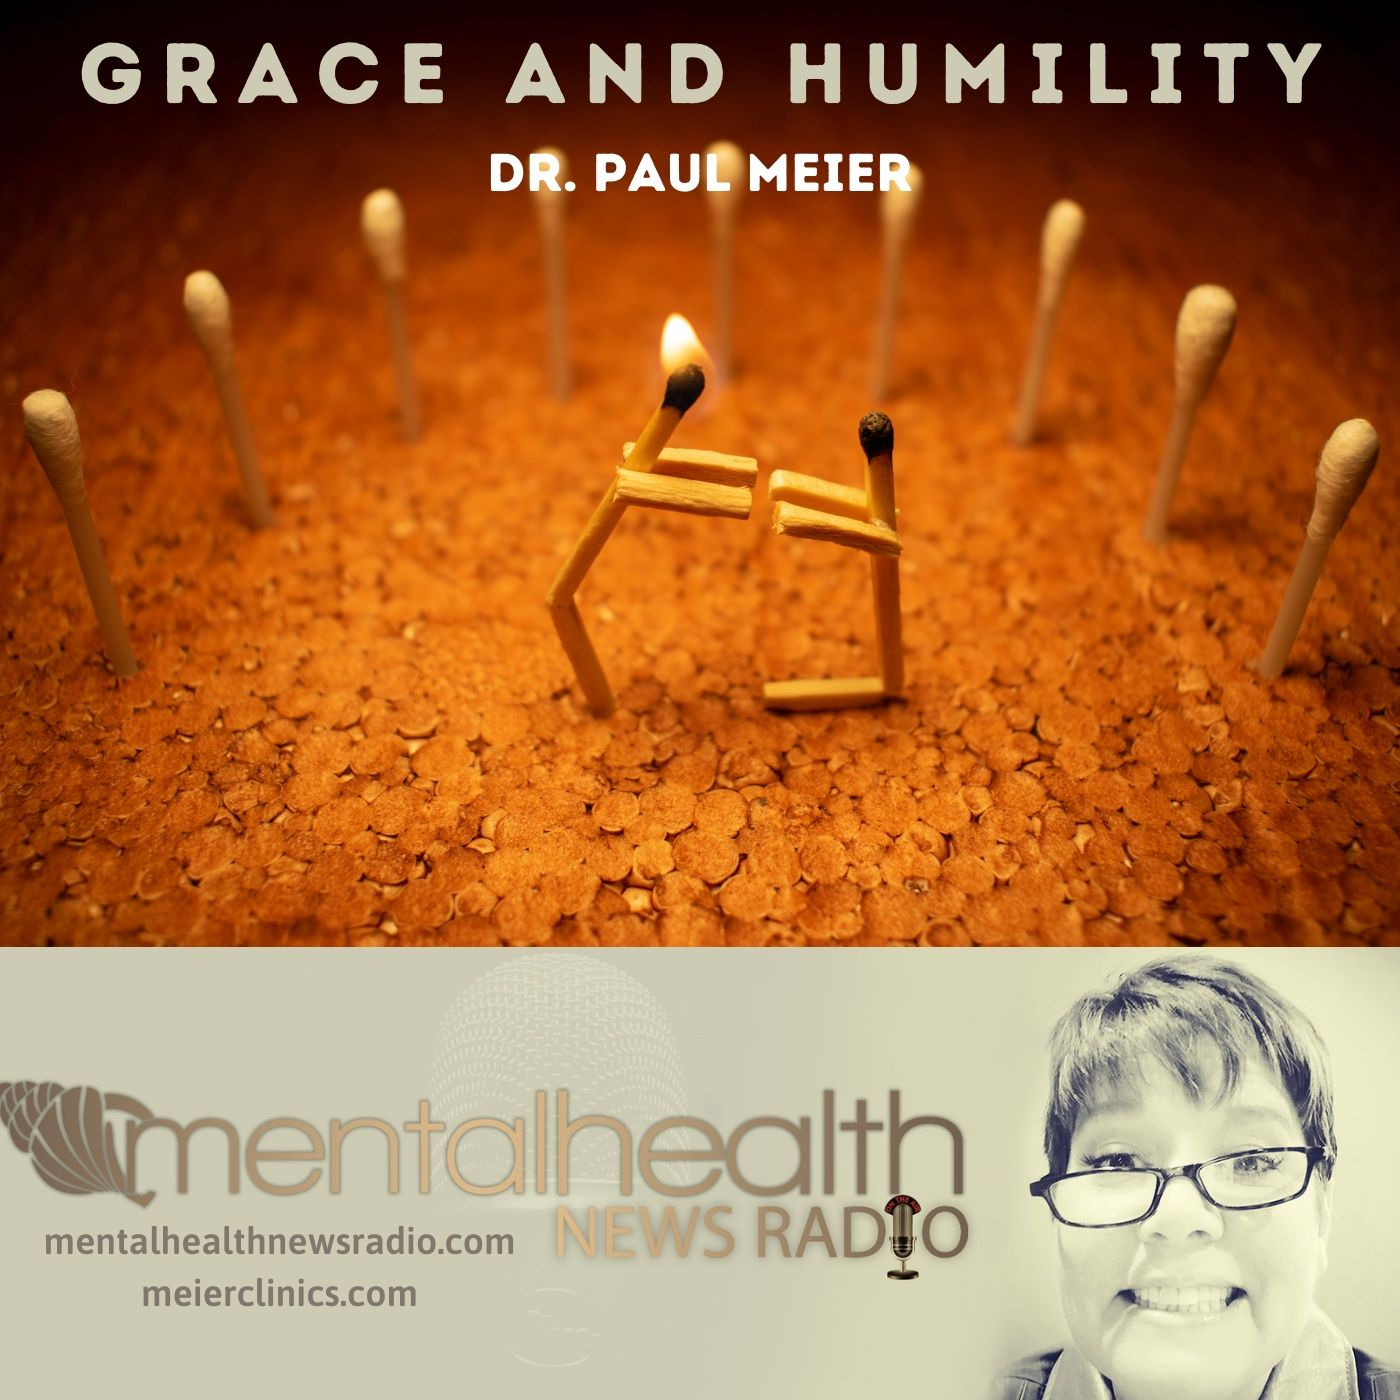 Mental Health News Radio - Grace and Humility with Dr. Paul Meier